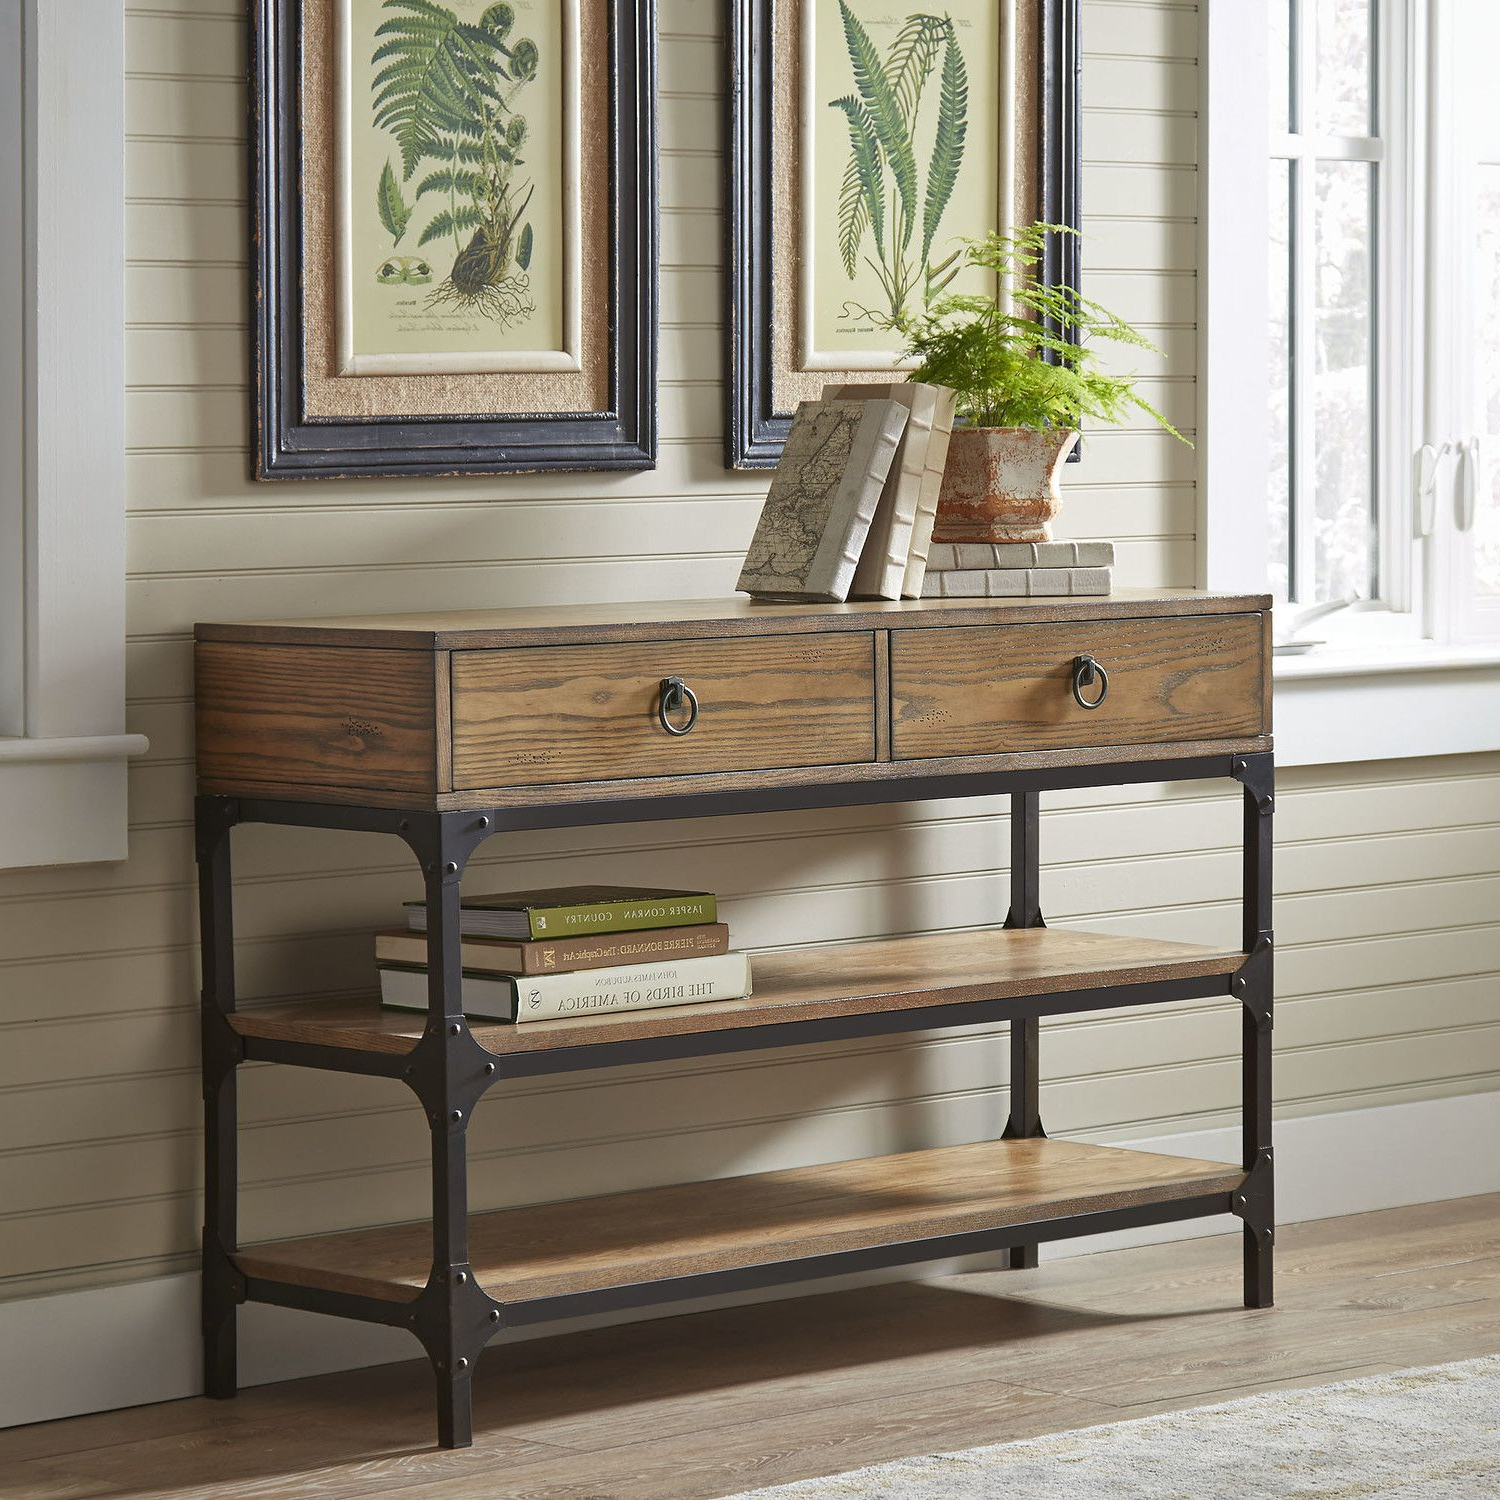 Made With Ash Veneers And A Rustic Metal With Regard To Tobias Media Console Tables (Gallery 10 of 20)